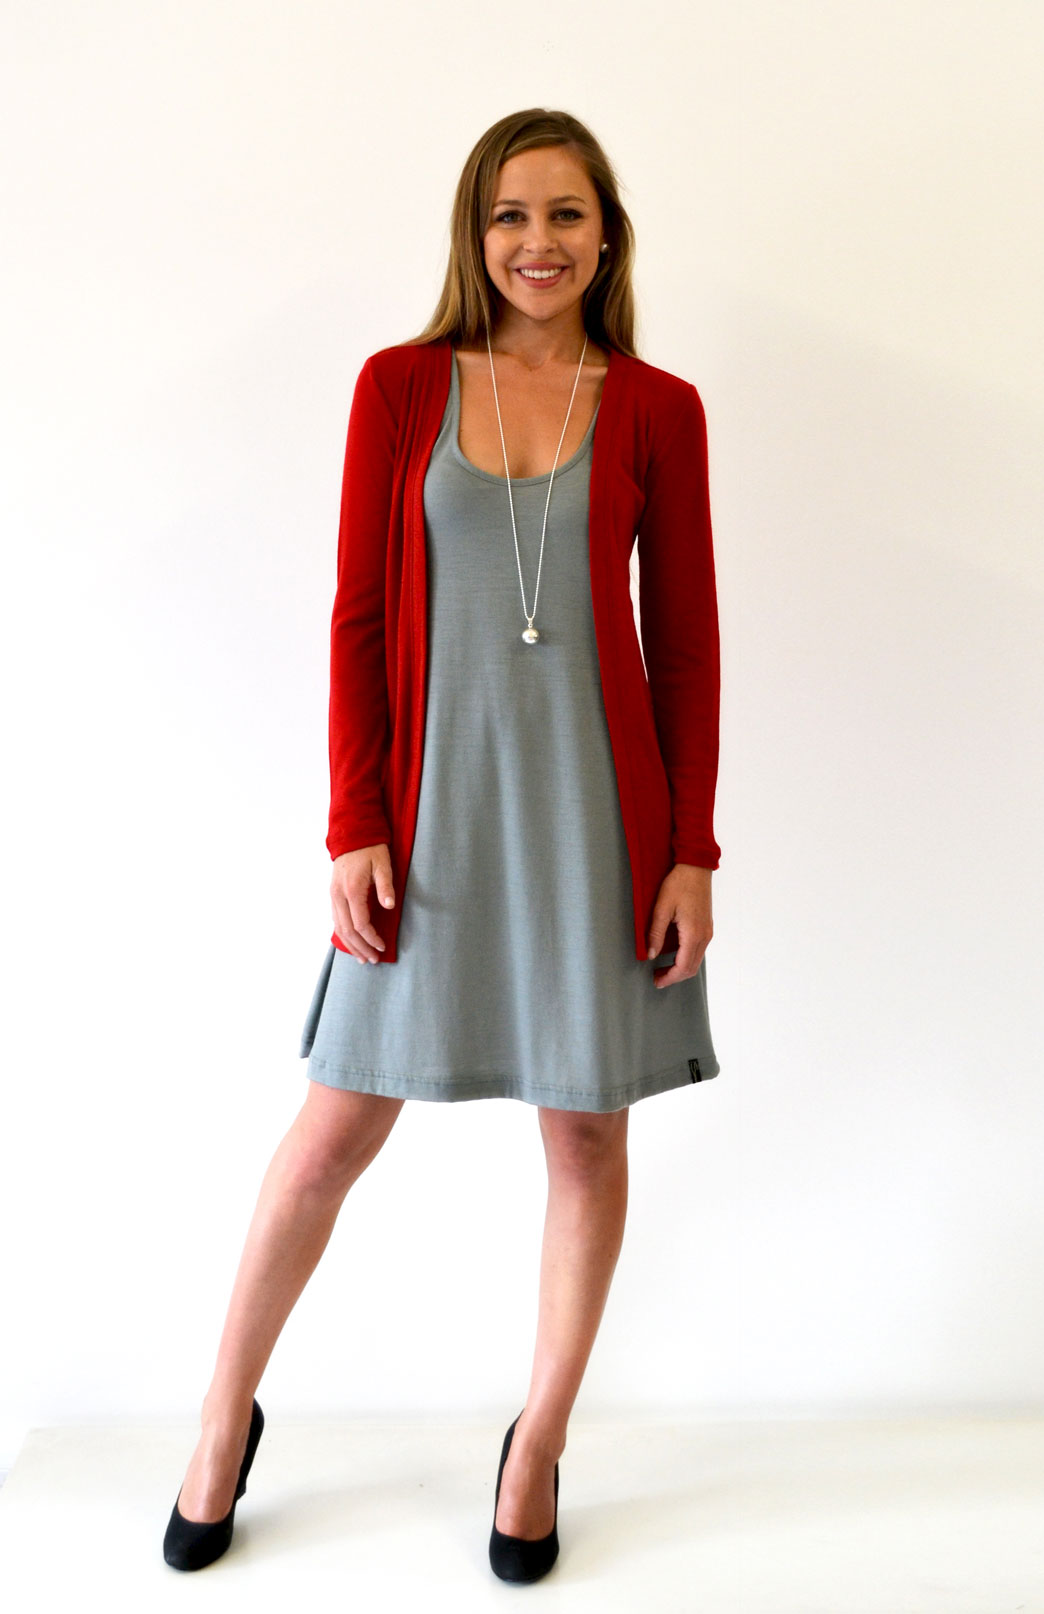 Slimline Cardigan - Women's Flame Red Wool Cardigan with no buttons or fastenings - Smitten Merino Tasmania Australia